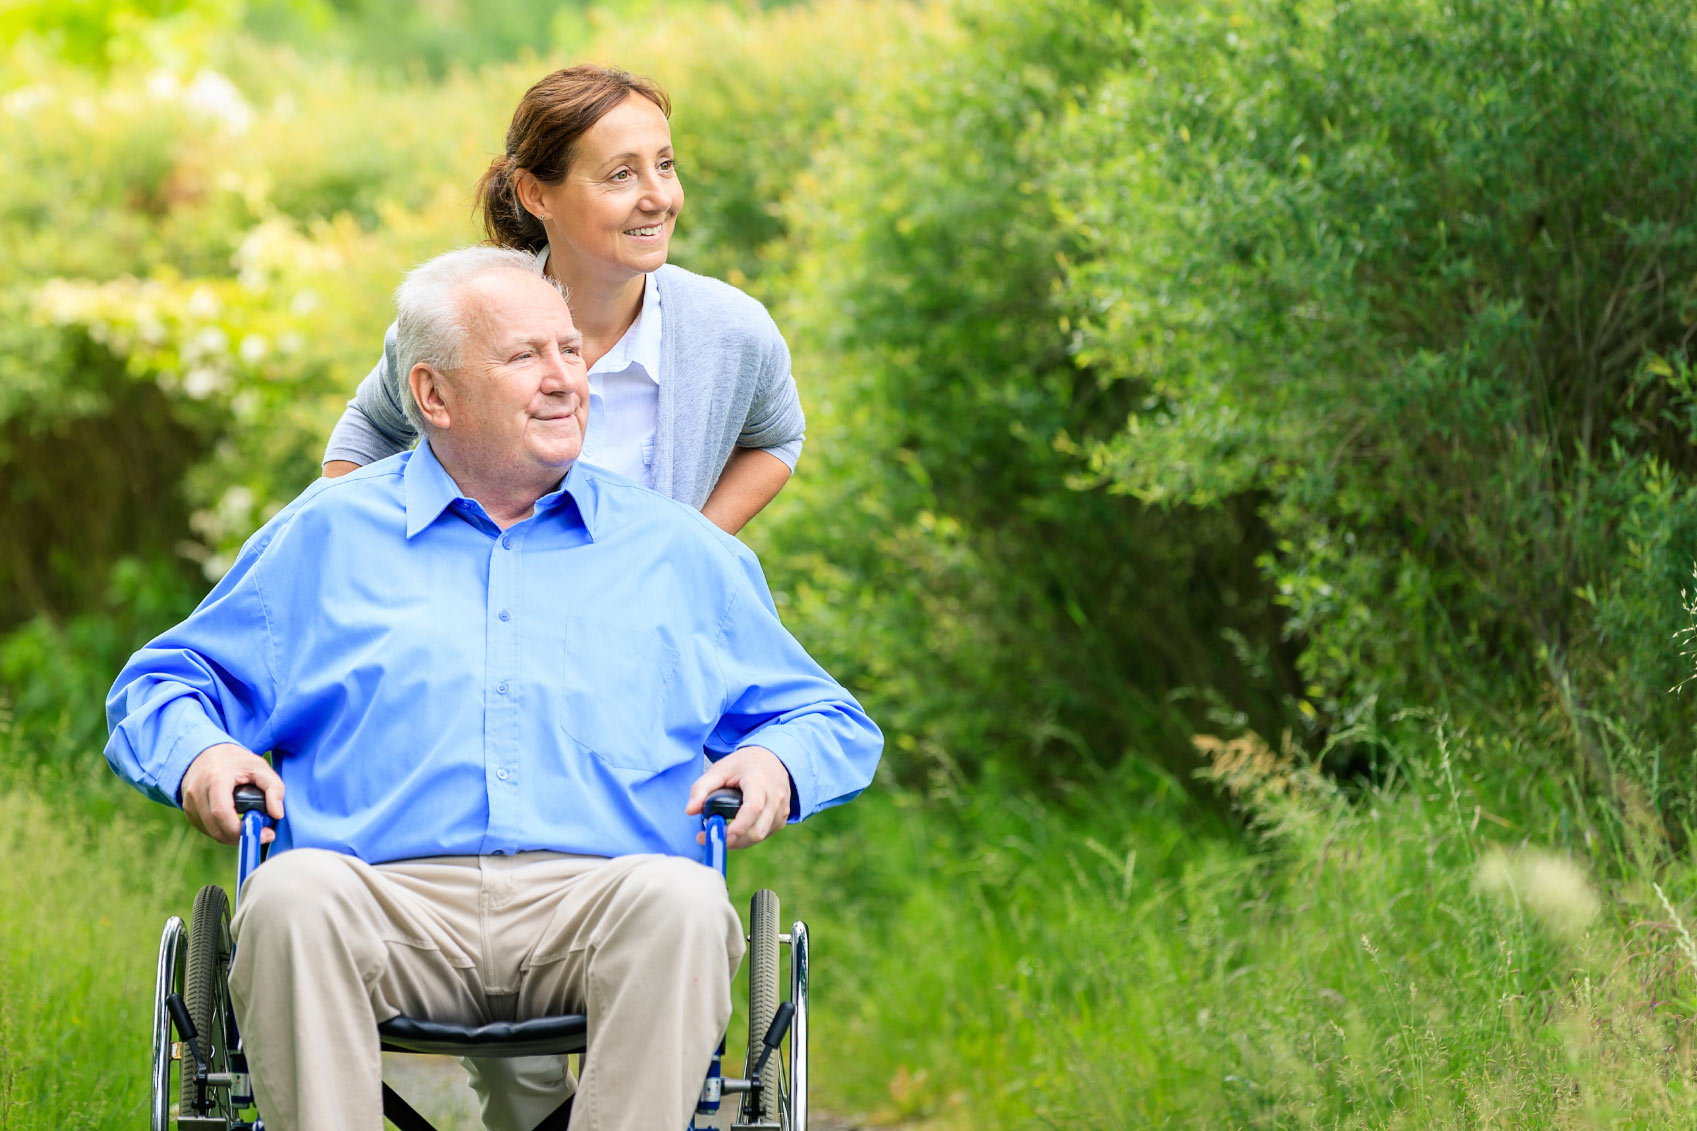 Care your way carer with Injured person